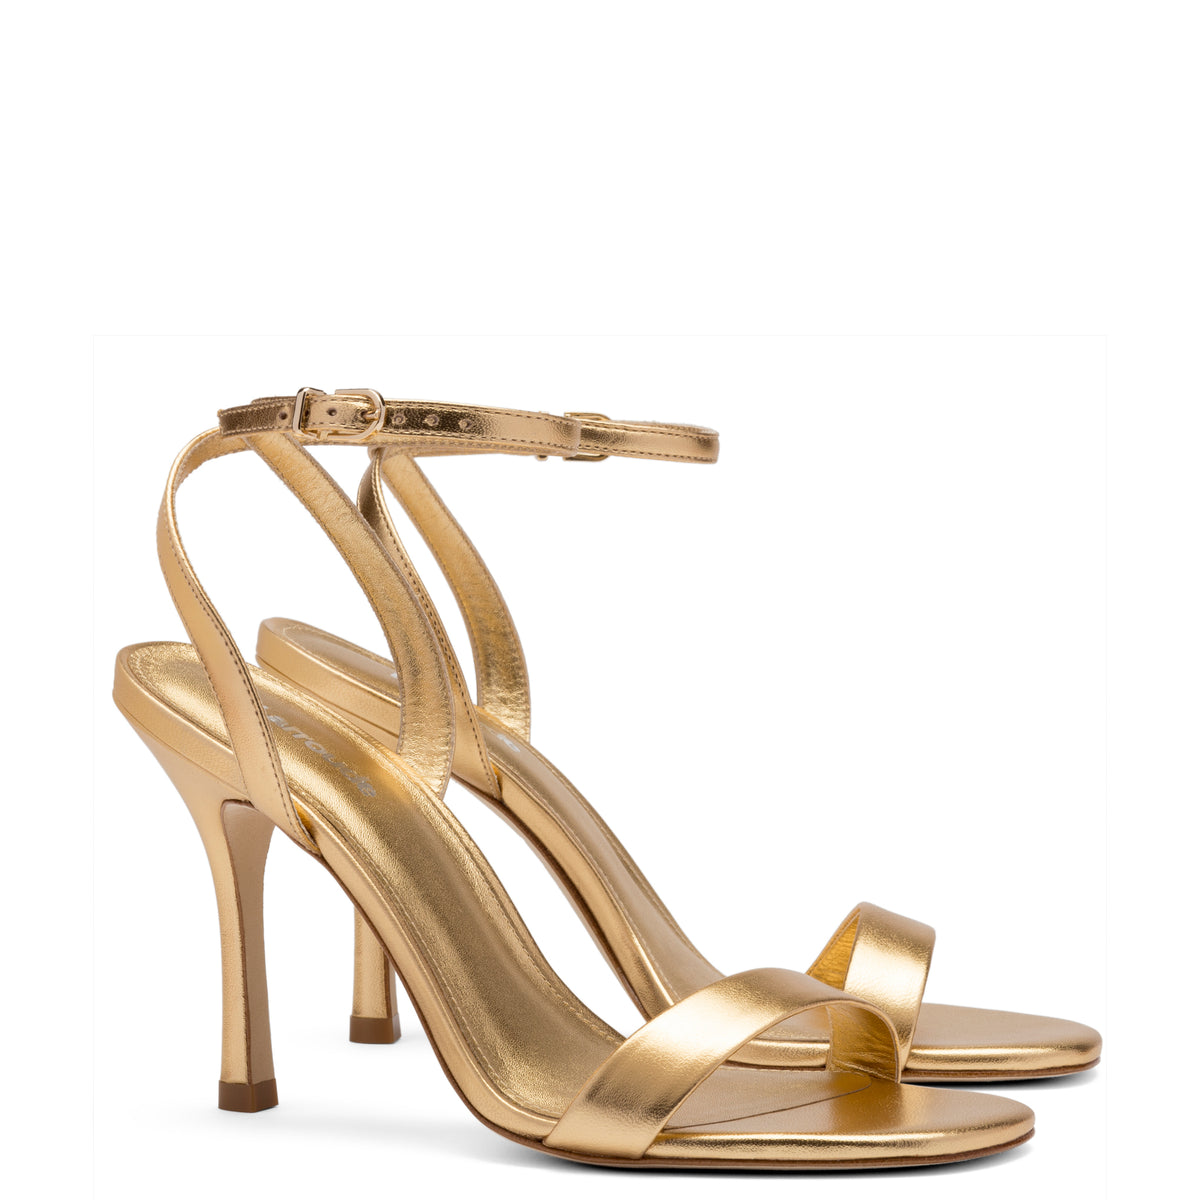 Nyx Sandal In Gold Metallic Leather